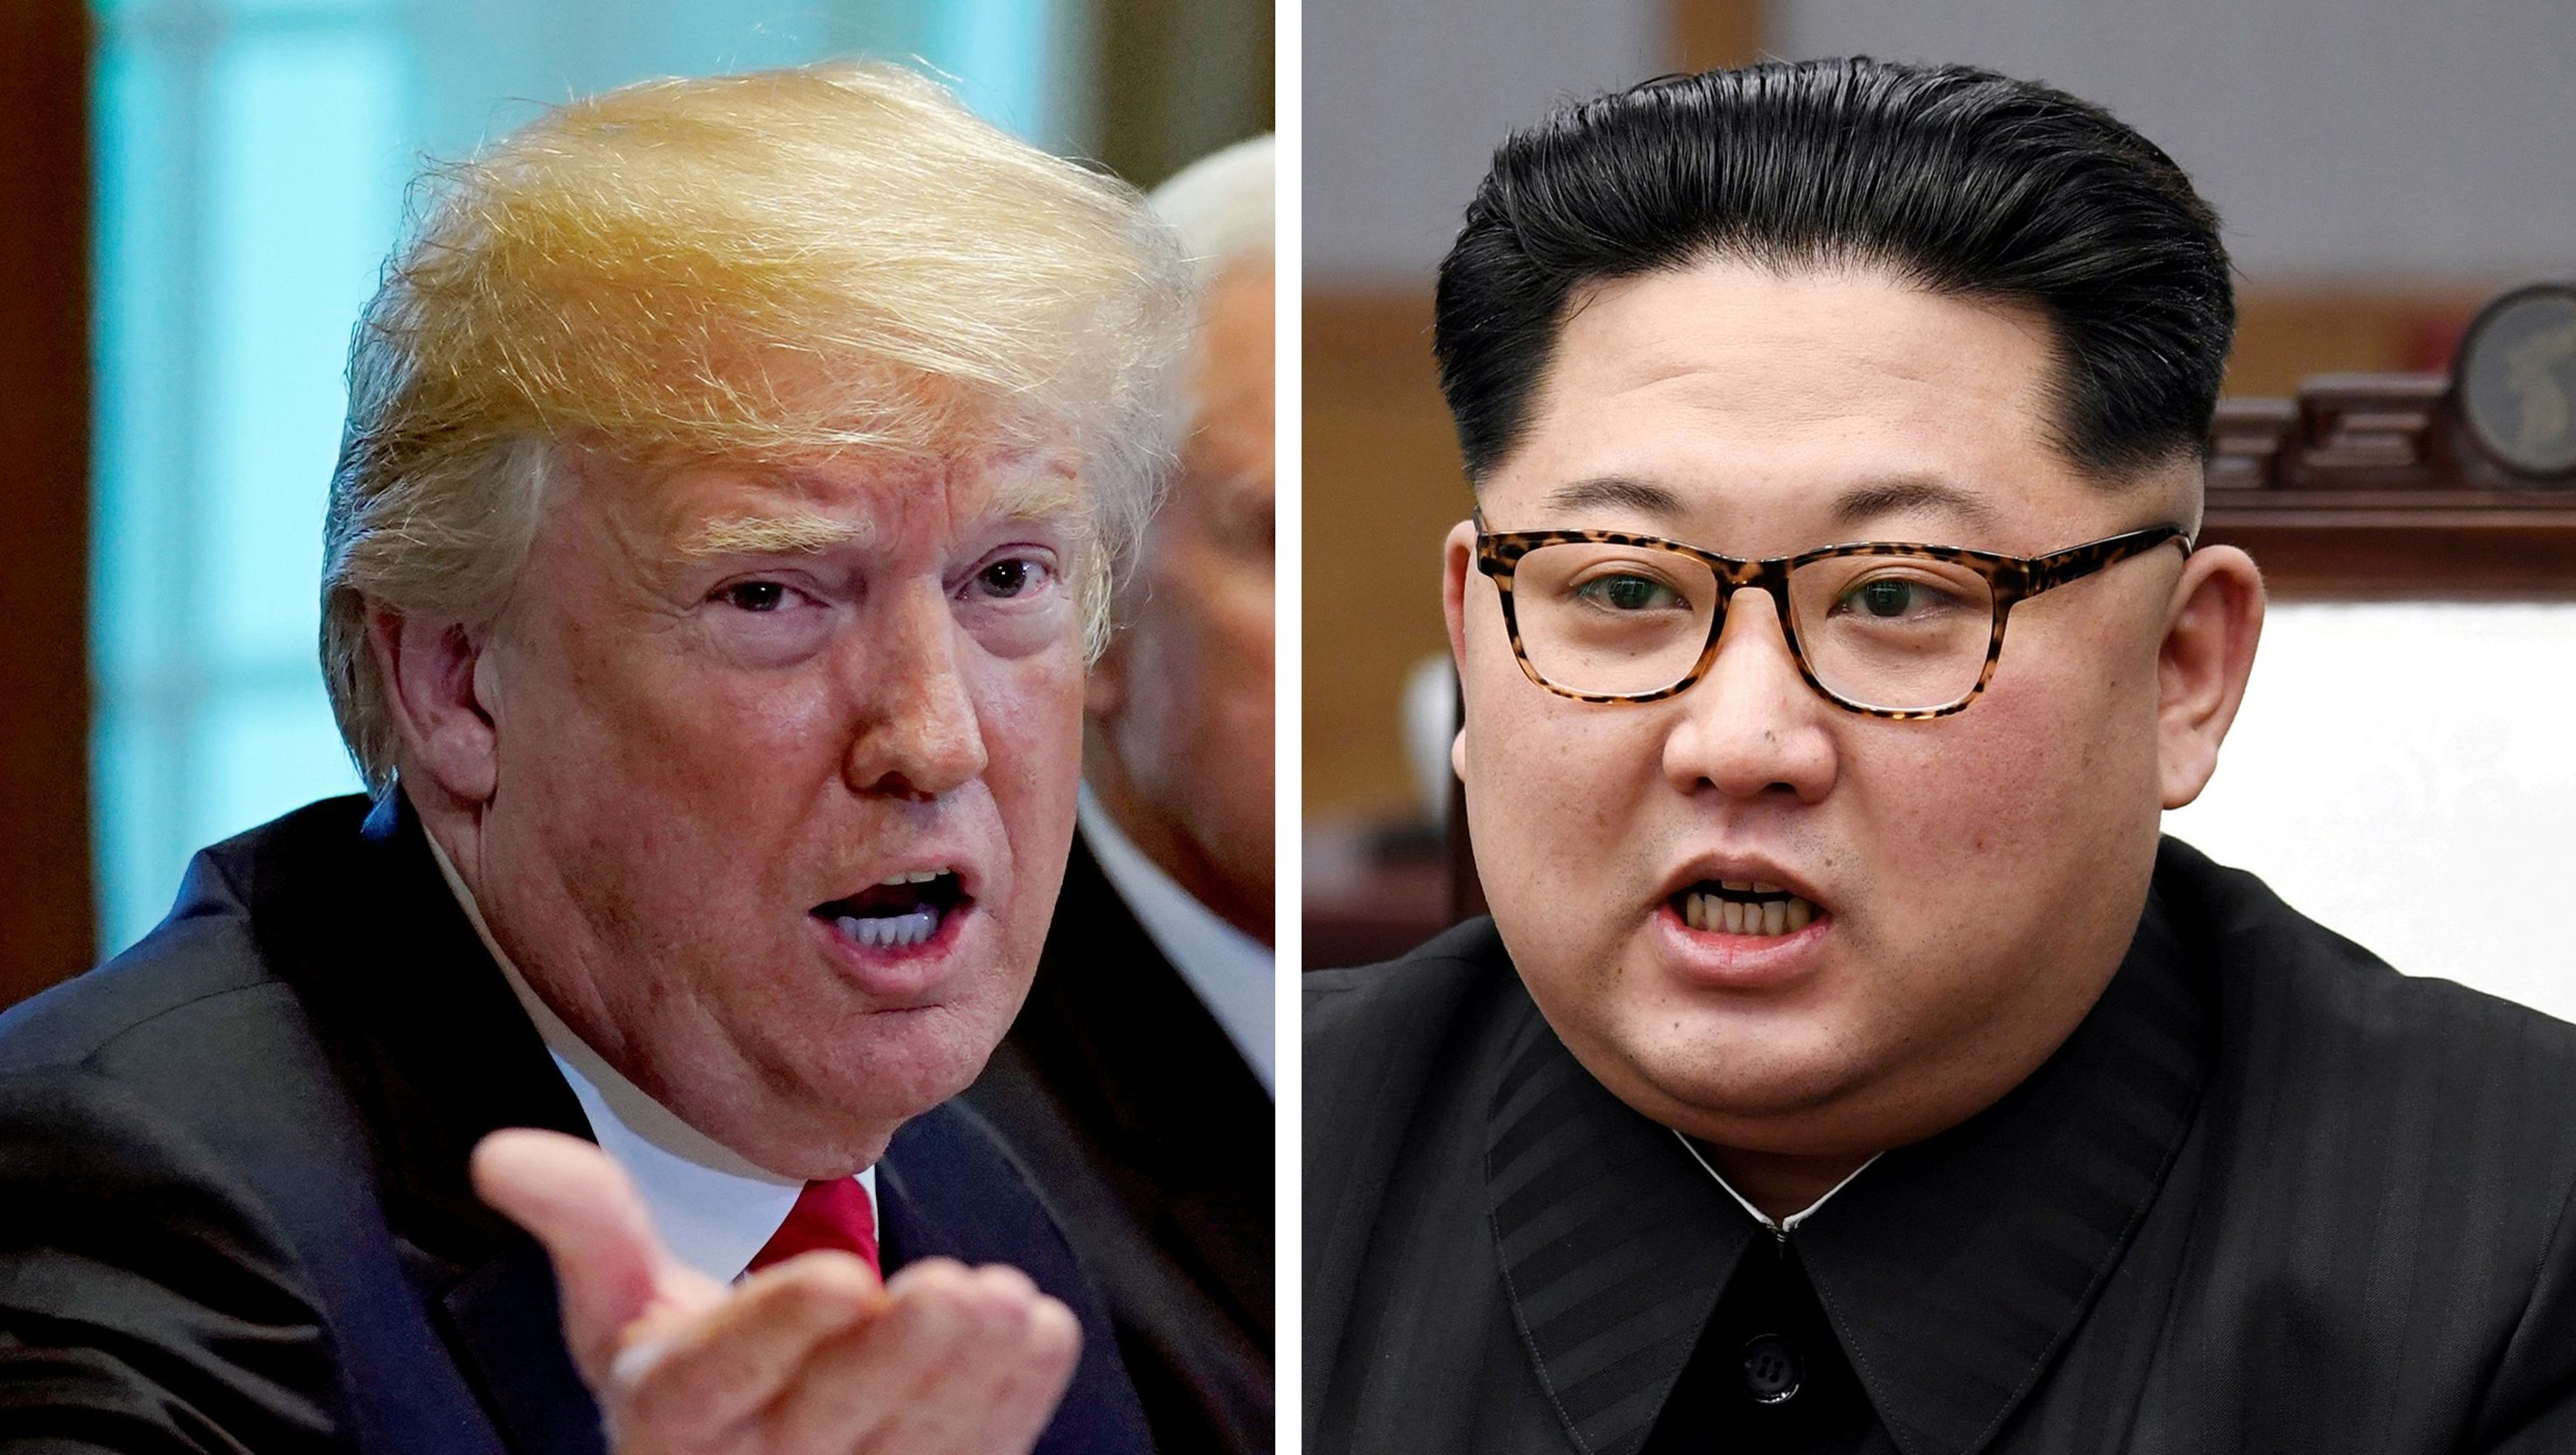 A combination photo shows U.S.  President Donald Trump and North Korean leader Kim Jong Un (R) in Washington, DC, U.S. May 17, 2018 and in Panmunjom, South Korea, April 27, 2018 respectively.